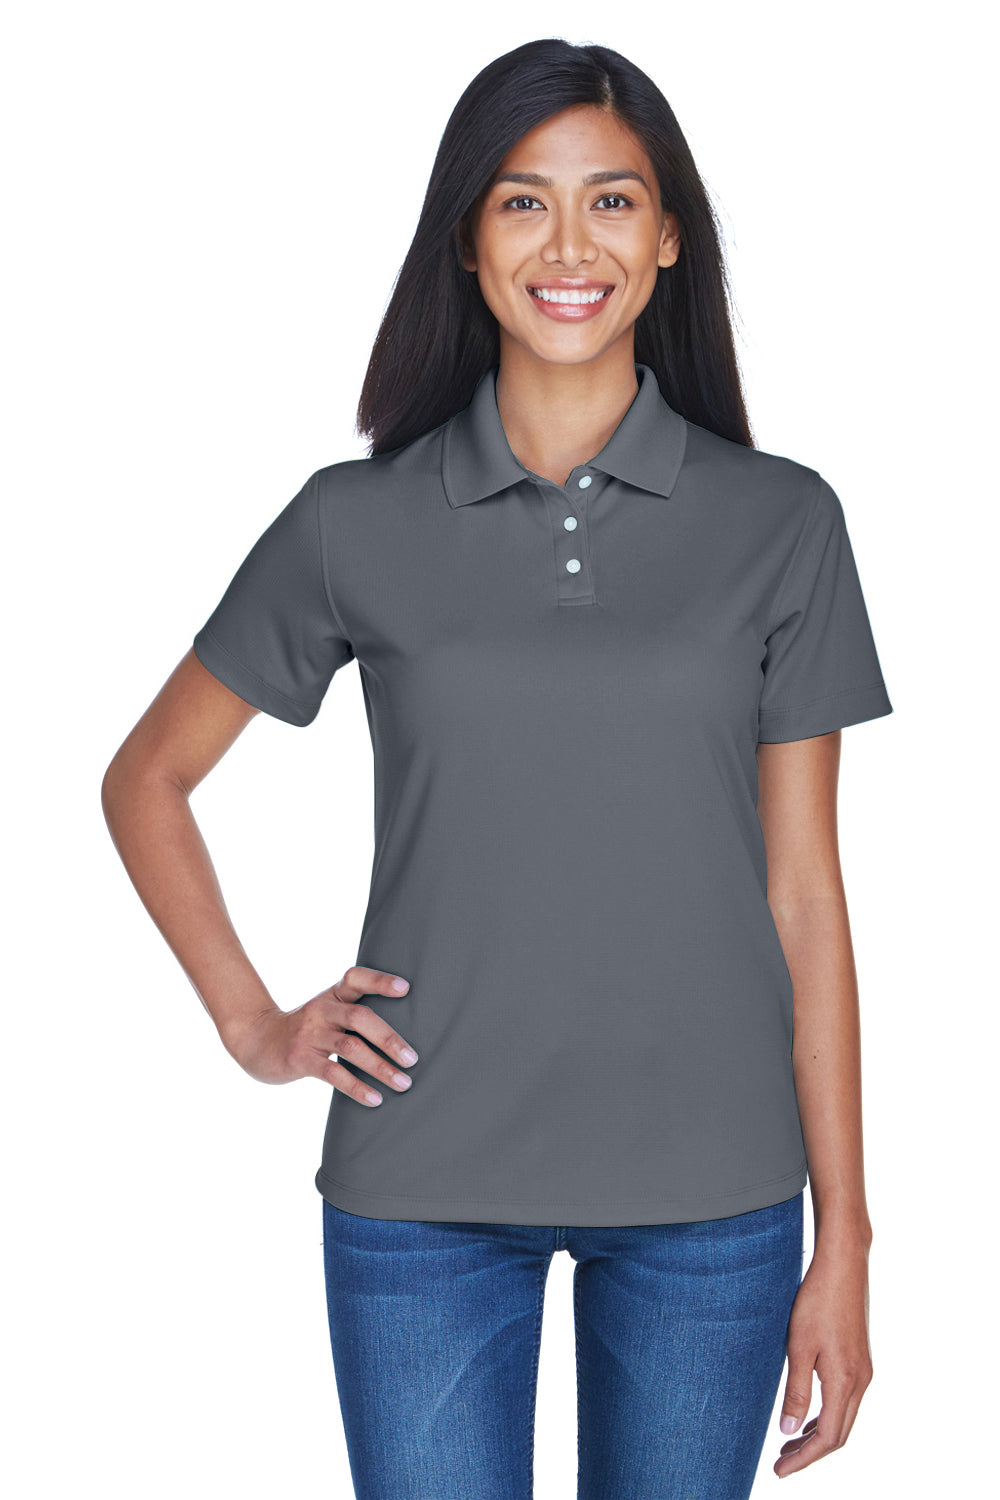 UltraClub 8445L Womens Cool & Dry Performance Moisture Wicking Short Sleeve Polo Shirt Charcoal Grey Front